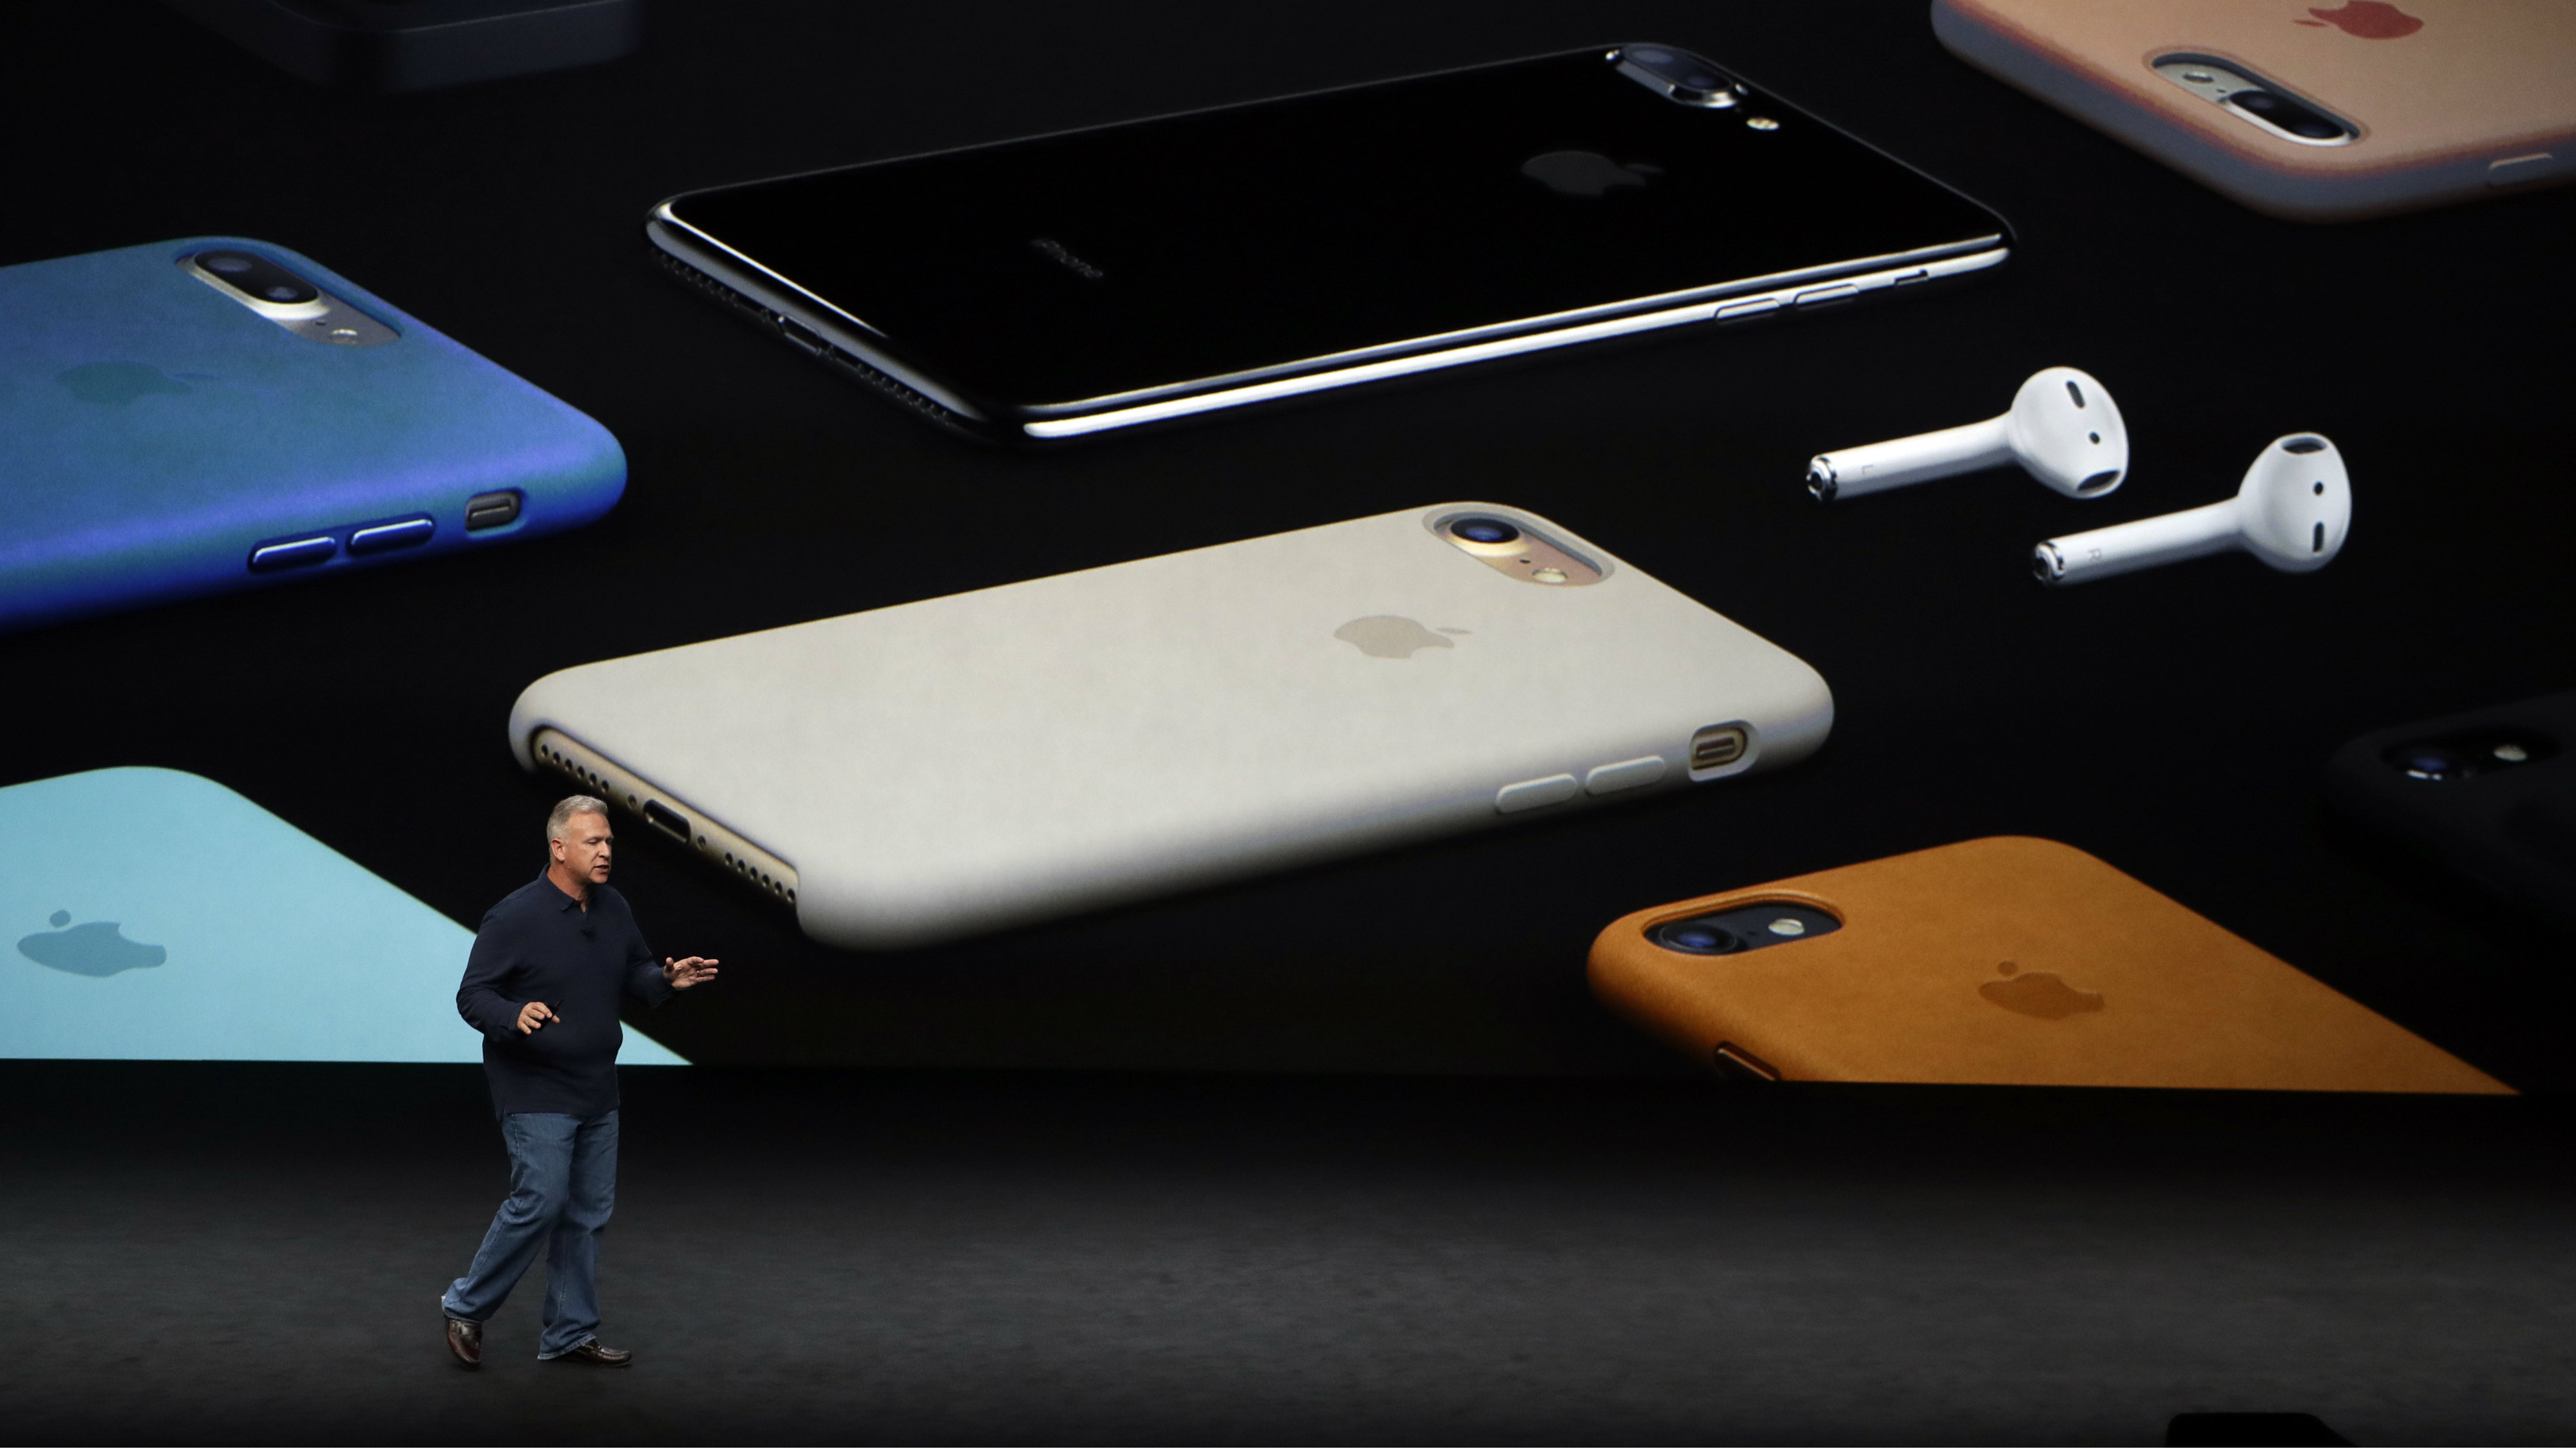 In this Sept. 7, 2016, file photo, Phil Schiller, Apple's senior vice president of worldwide marketing, talks about the pricing on the new iPhone 7 during an event to announce new products, in San Francisco. The new iPhones are better, even when considering that the most dramatic change is what got taken away: the traditional headphone jack.